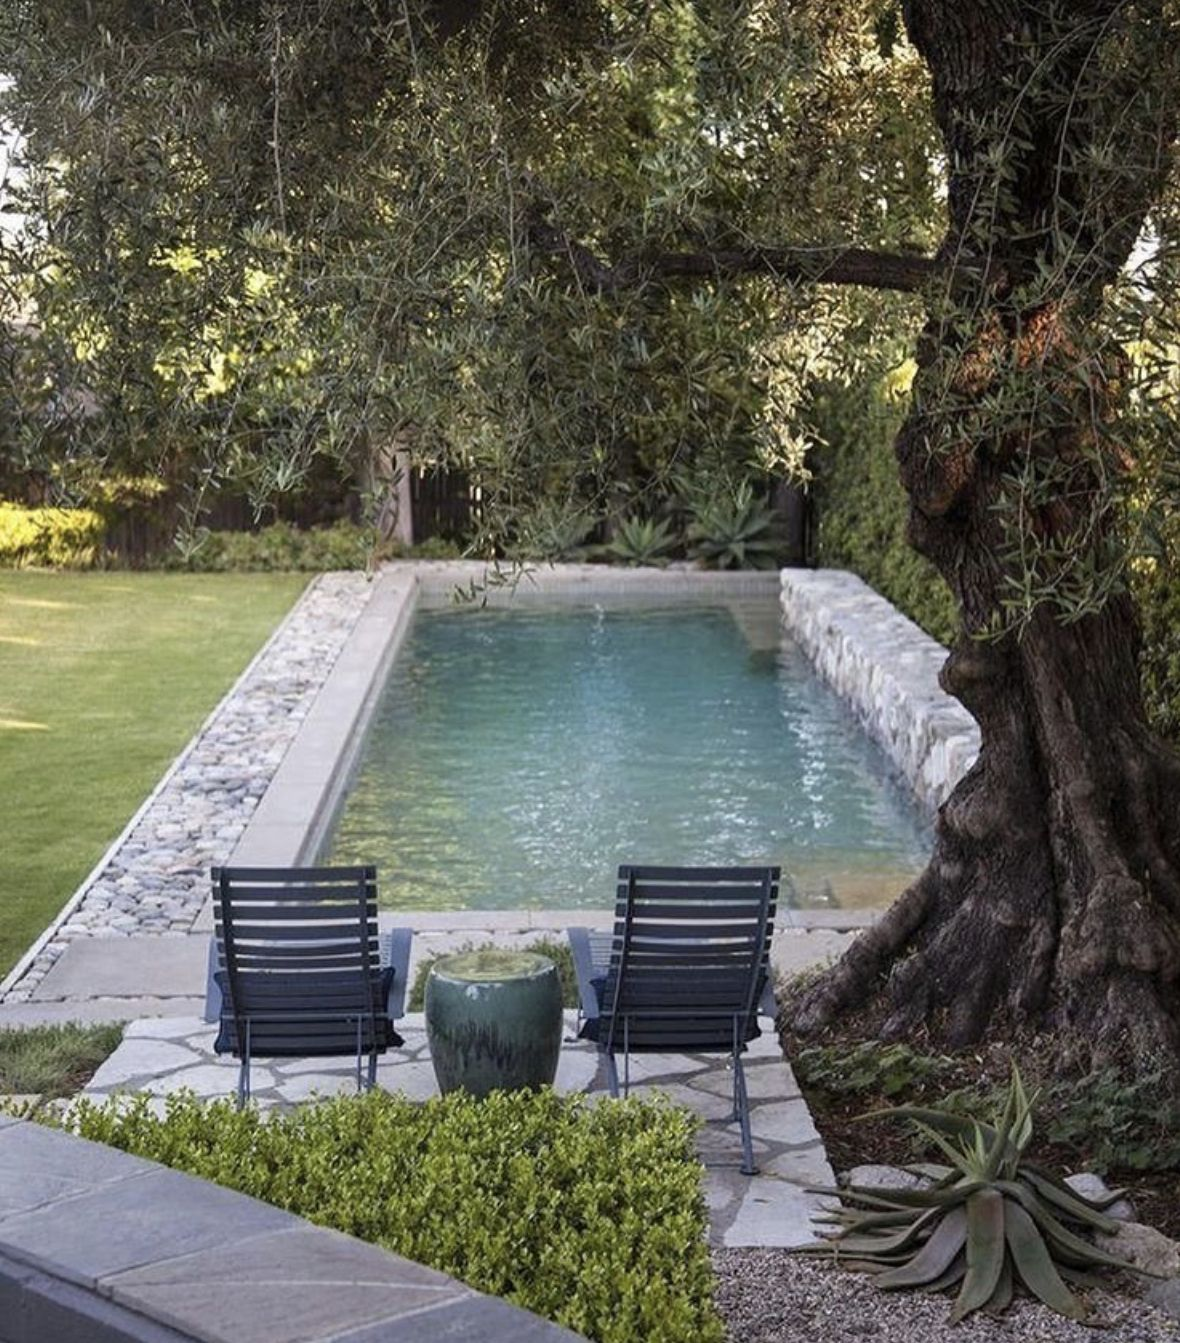 Pin By Vonallemwas On Hausbau Rue52 In 2020 Small Backyard Pools Backyard Pool Backyard Pool Designs